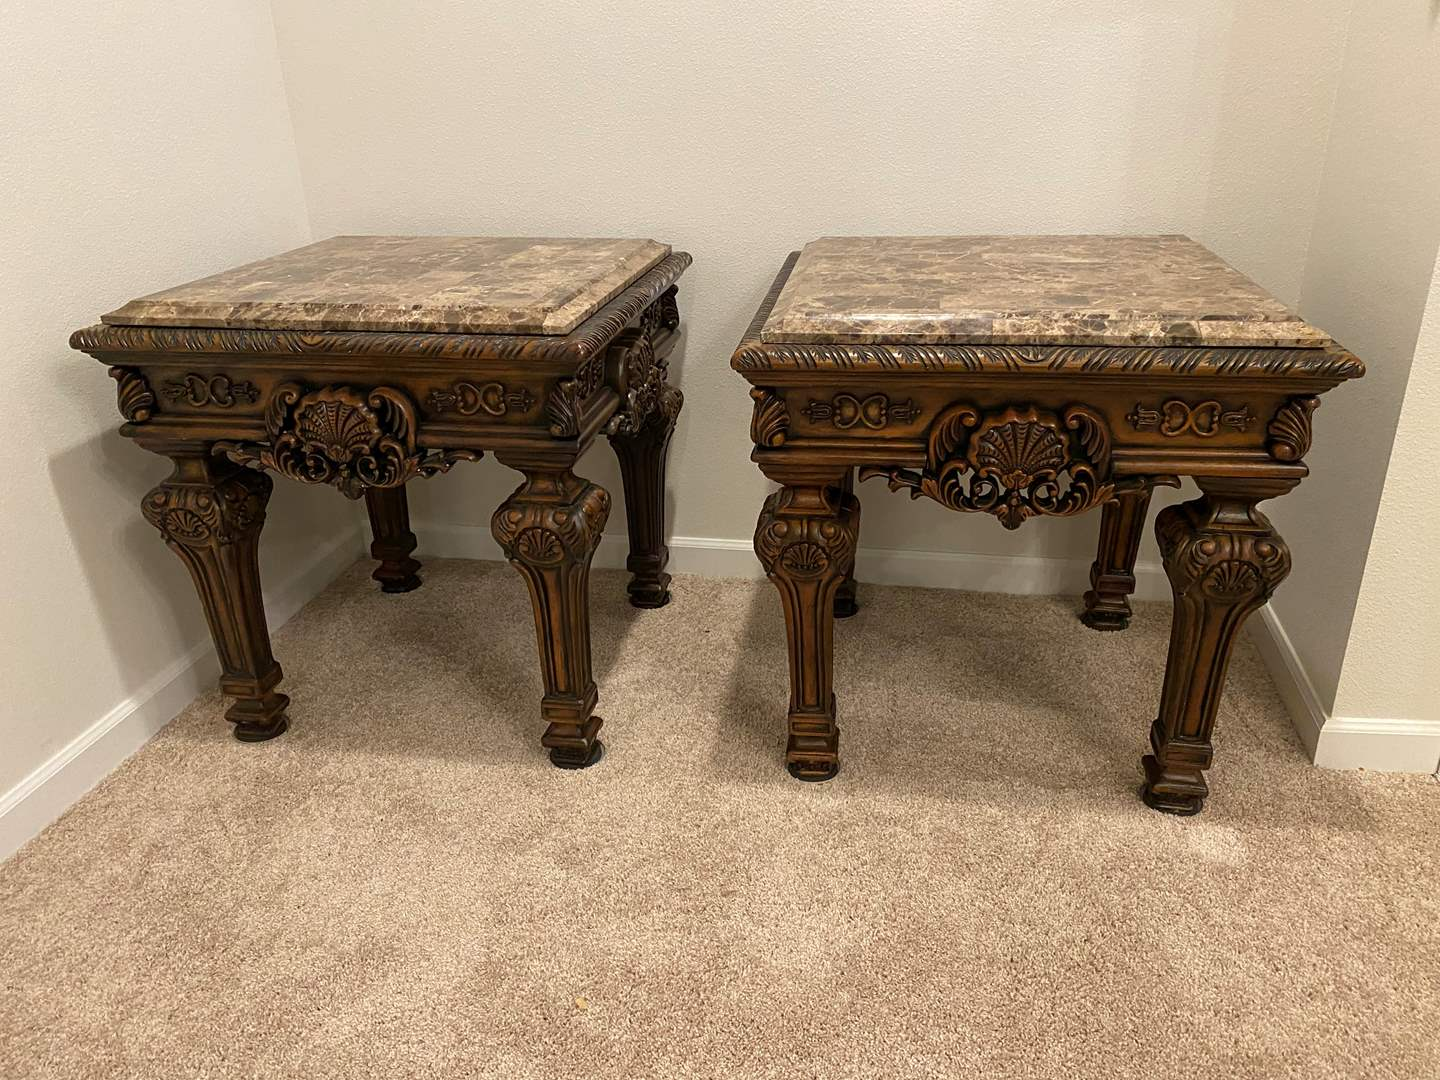 Lot # 201 - Two Large Wood End Tables w/ Alabaster Top (main image)